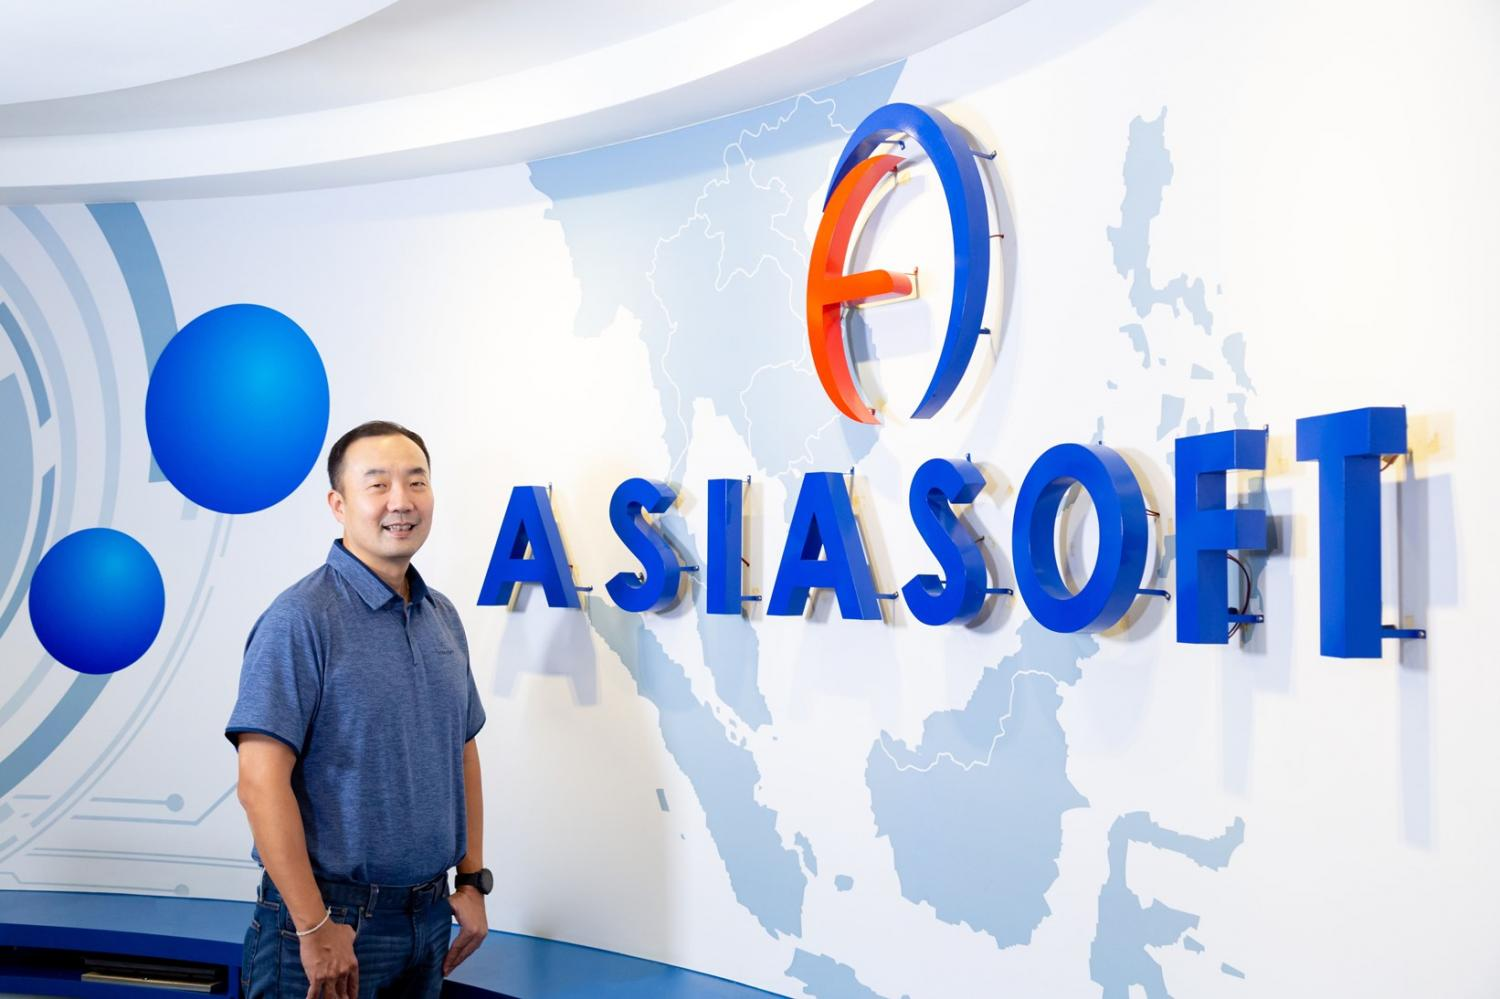 Mr Pramoth said Asiasoft will expand its reach to Vietnam and Indonesia as next targets.